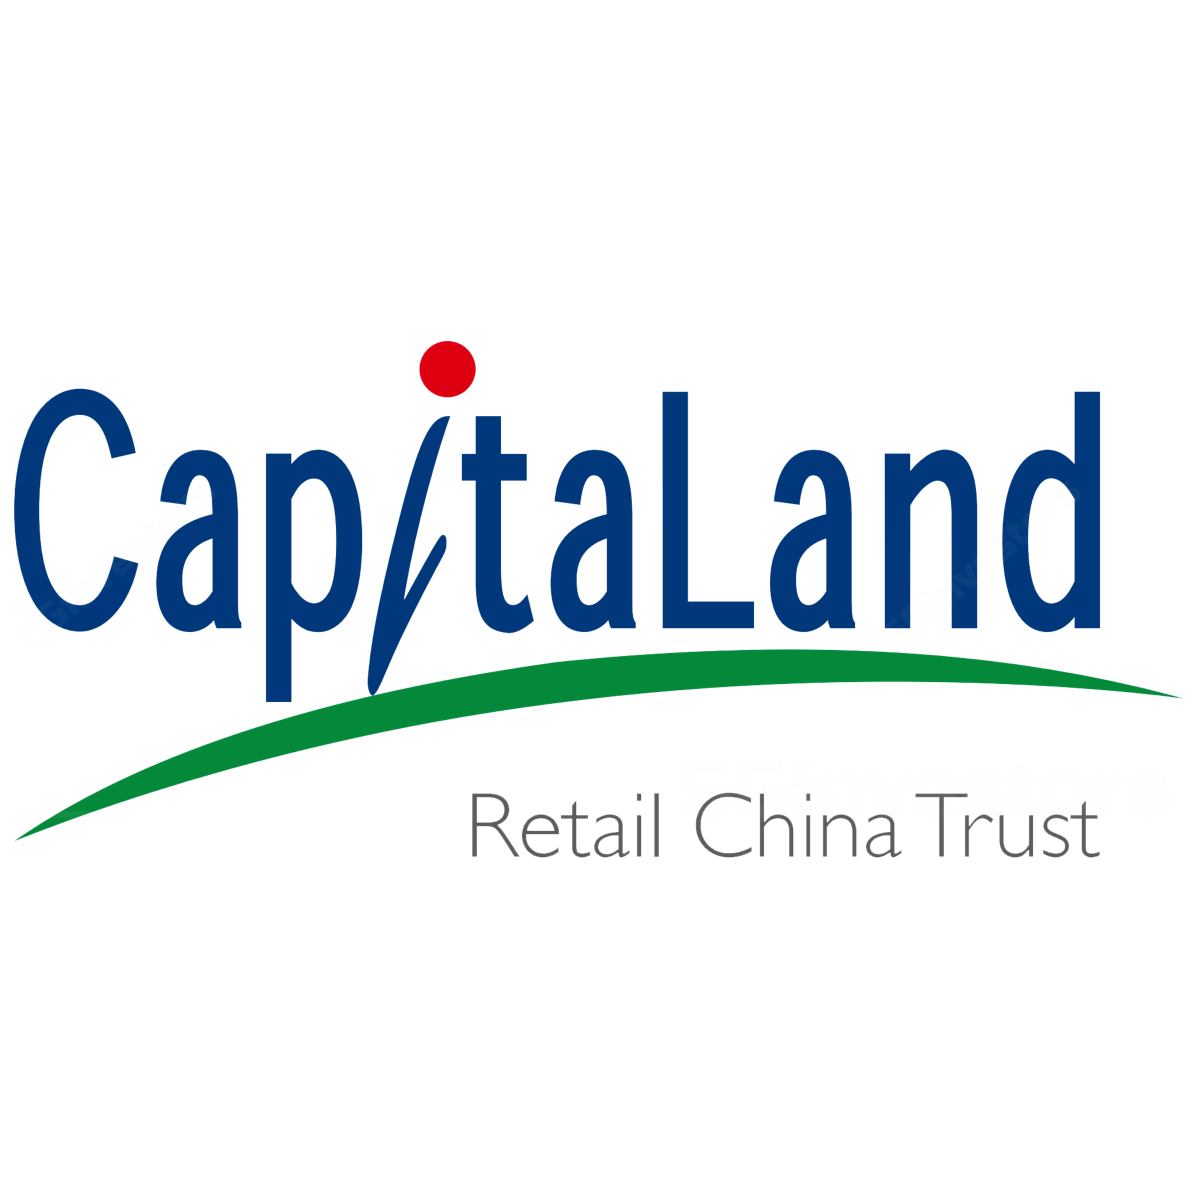 CapitaLand Retail China Trust - Phillip Securities 2017-12-04: Capital Recycling Into Another Tier 1 City